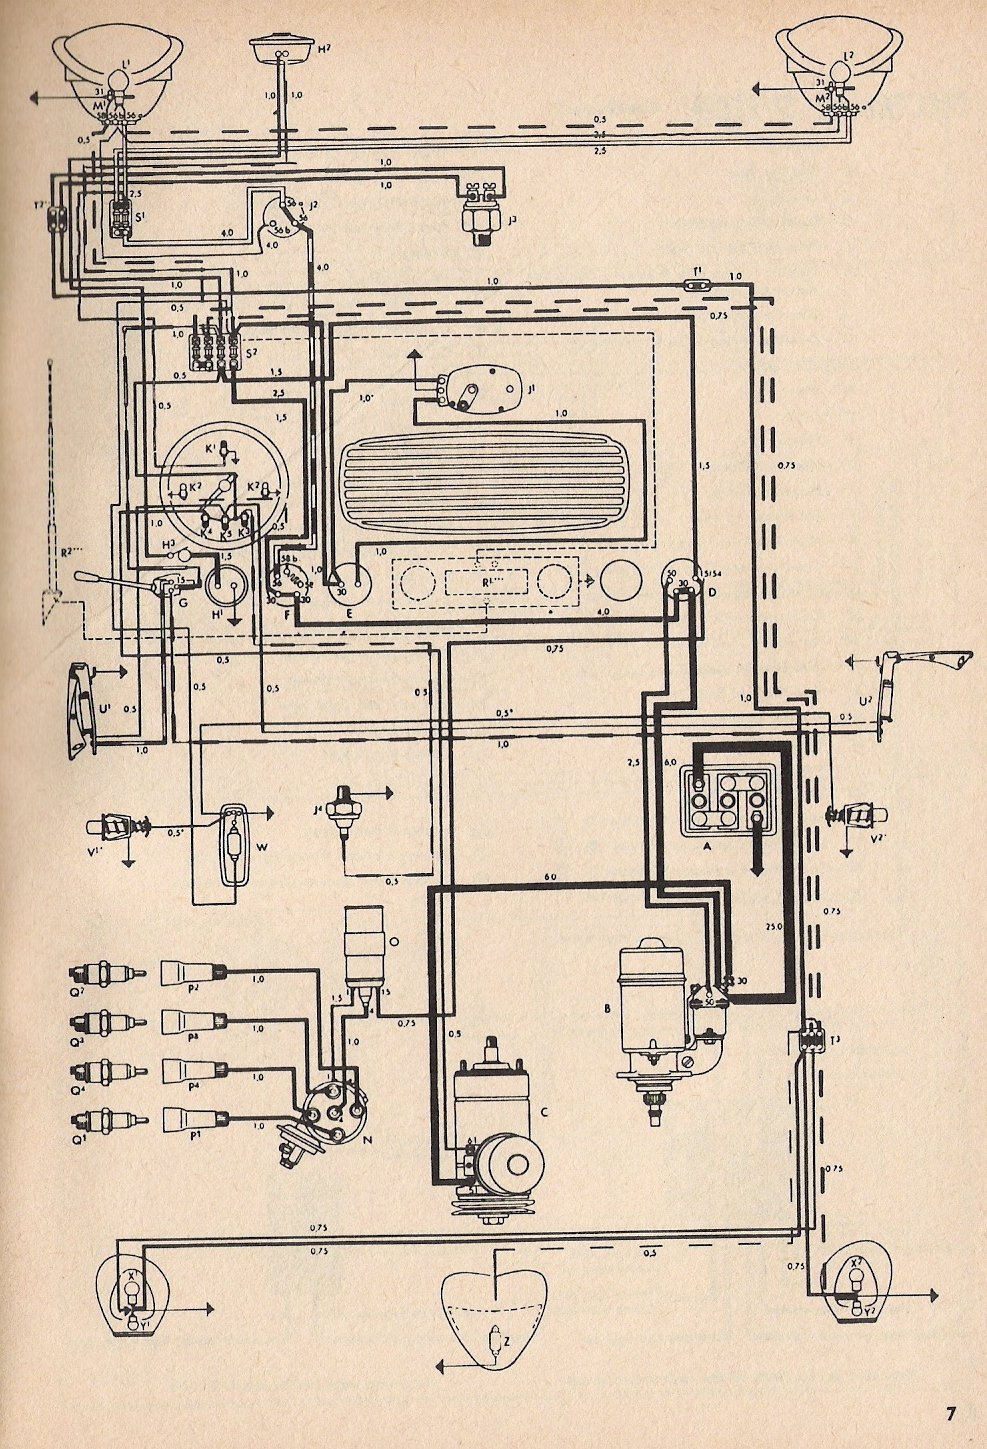 Electrical Wiring Diagram Of 1971 Volkswagen Beetle And Super Beetle furthermore 2017 Volkswagen Beetle Dune 25 Cars Worth Waiting For as well 1970 Opel Gt Ignition Coil Wiring Diagrams further Viewtopic furthermore Showthread. on vw super beetle wiring diagram